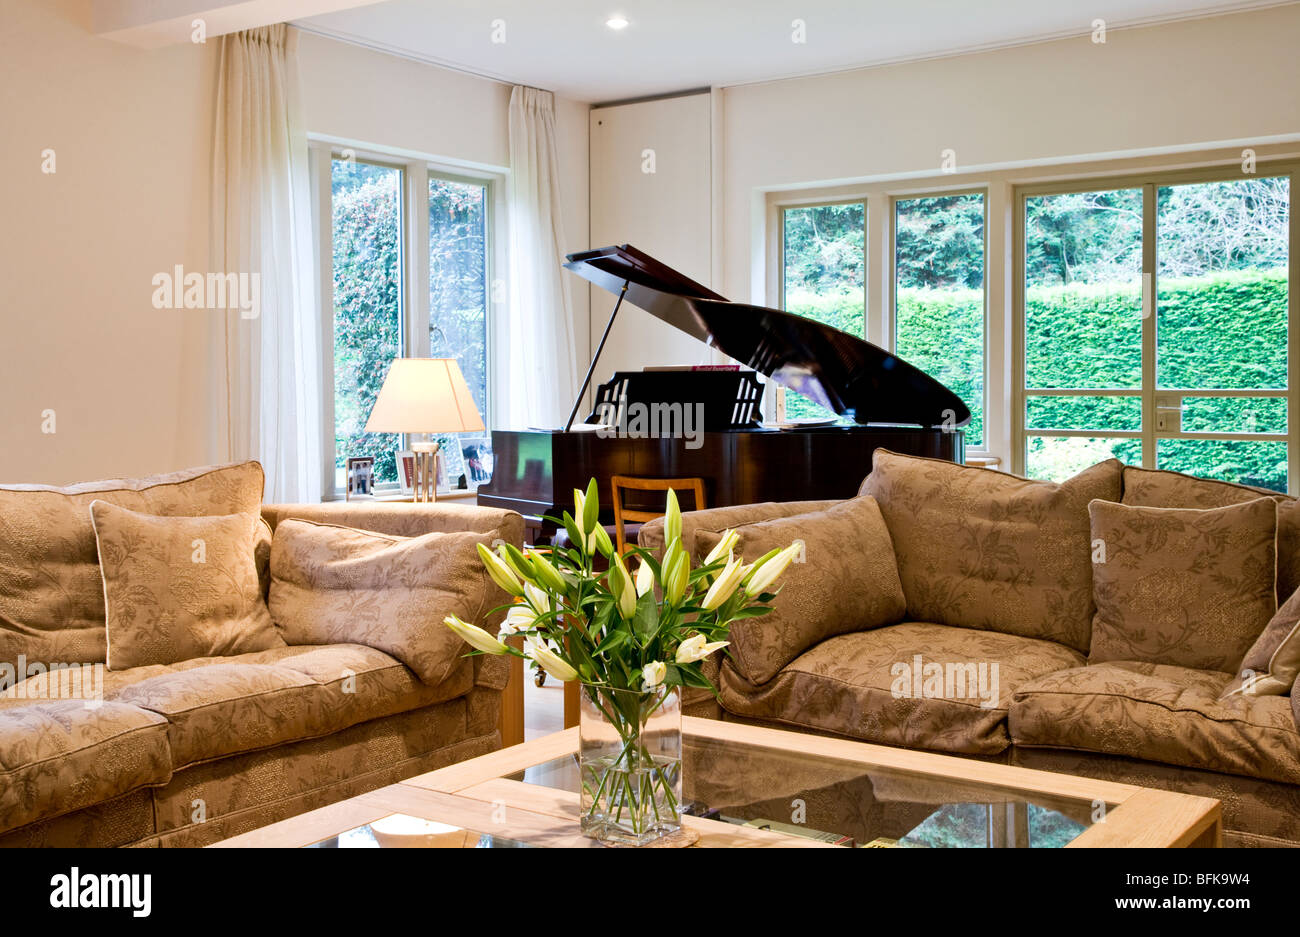 A smart modern stylish lounge, living or sitting room with a baby grand  piano and vase of lilies